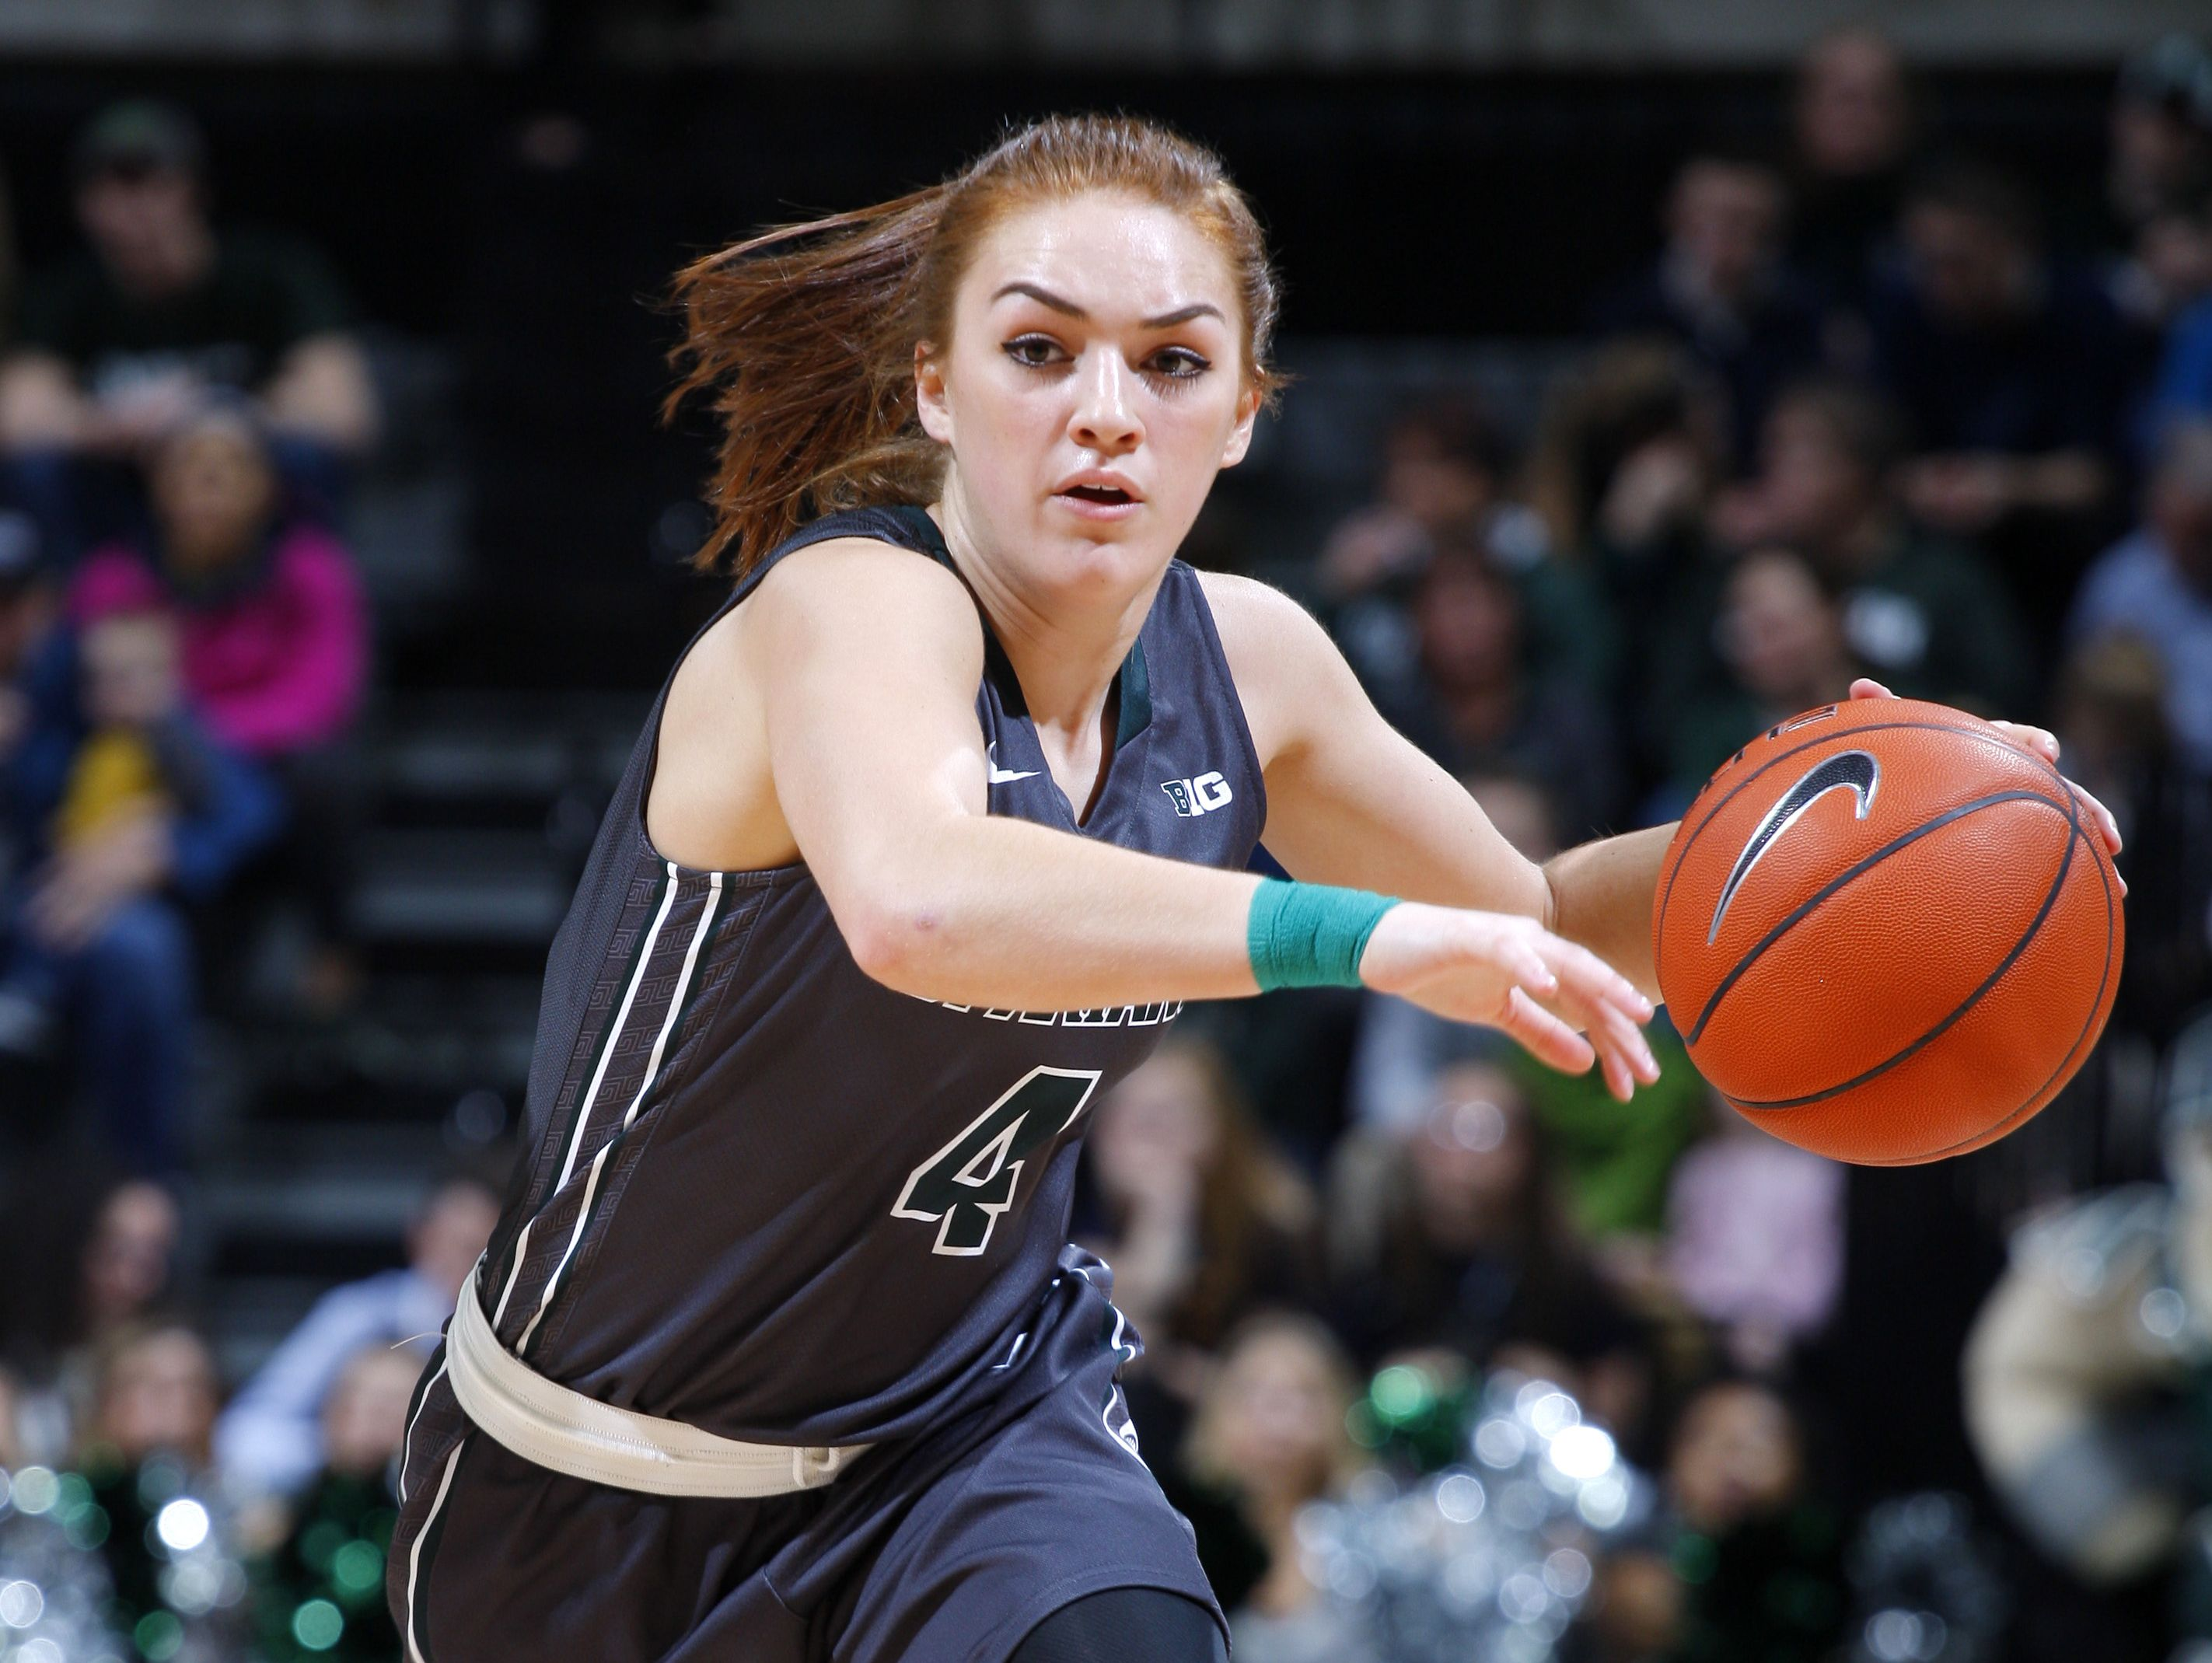 Freshman Taryn McCutcheon has started all 23 games this season for the Spartans and is averaging 7.4 points and 5.1 assists.